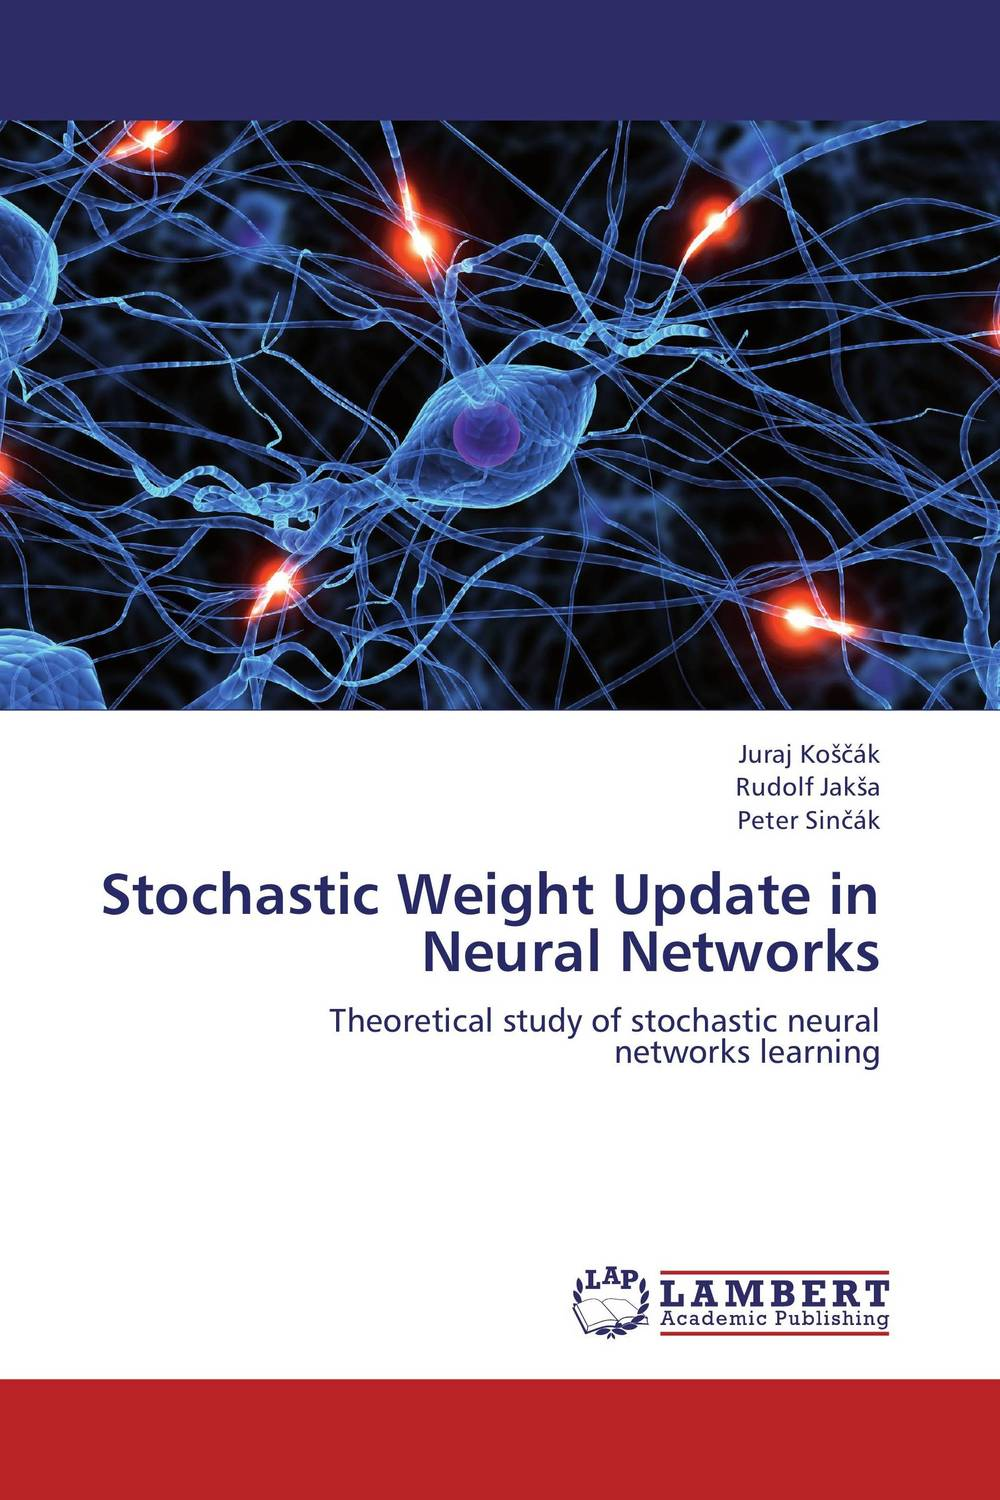 Stochastic Weight Update in Neural Networks